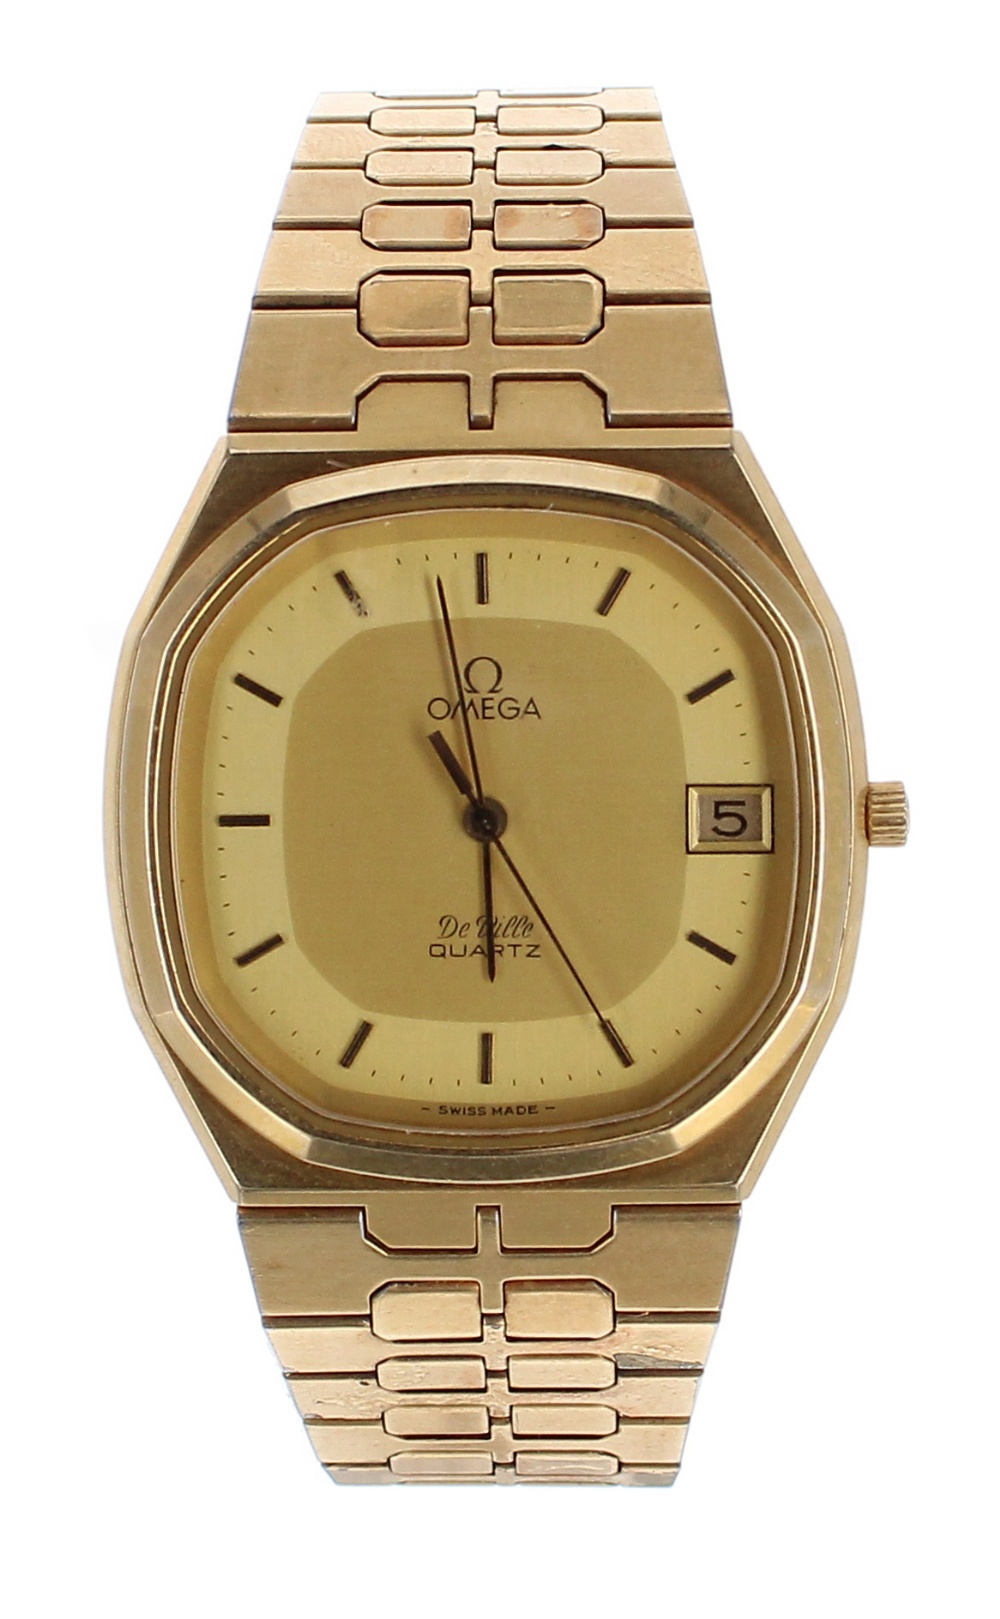 Lot 3 - Omega DeVille Quartz gold plated and stainless steel gentleman's bracelet watch, ref. 196.0145 /